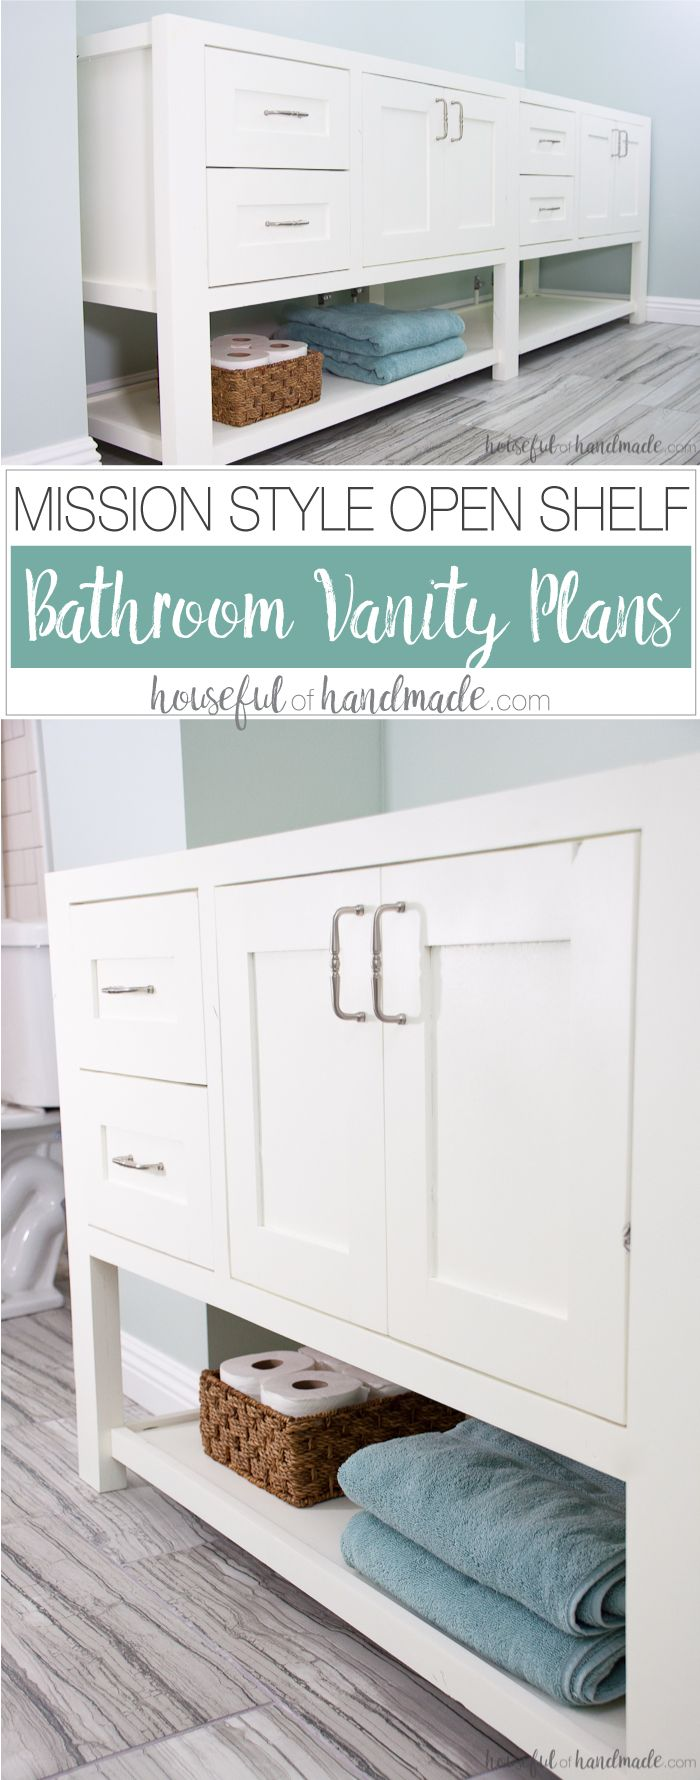 Diy bathroom vanity plans - Mission Style Open Shelf Bathroom Vanity Build Plans